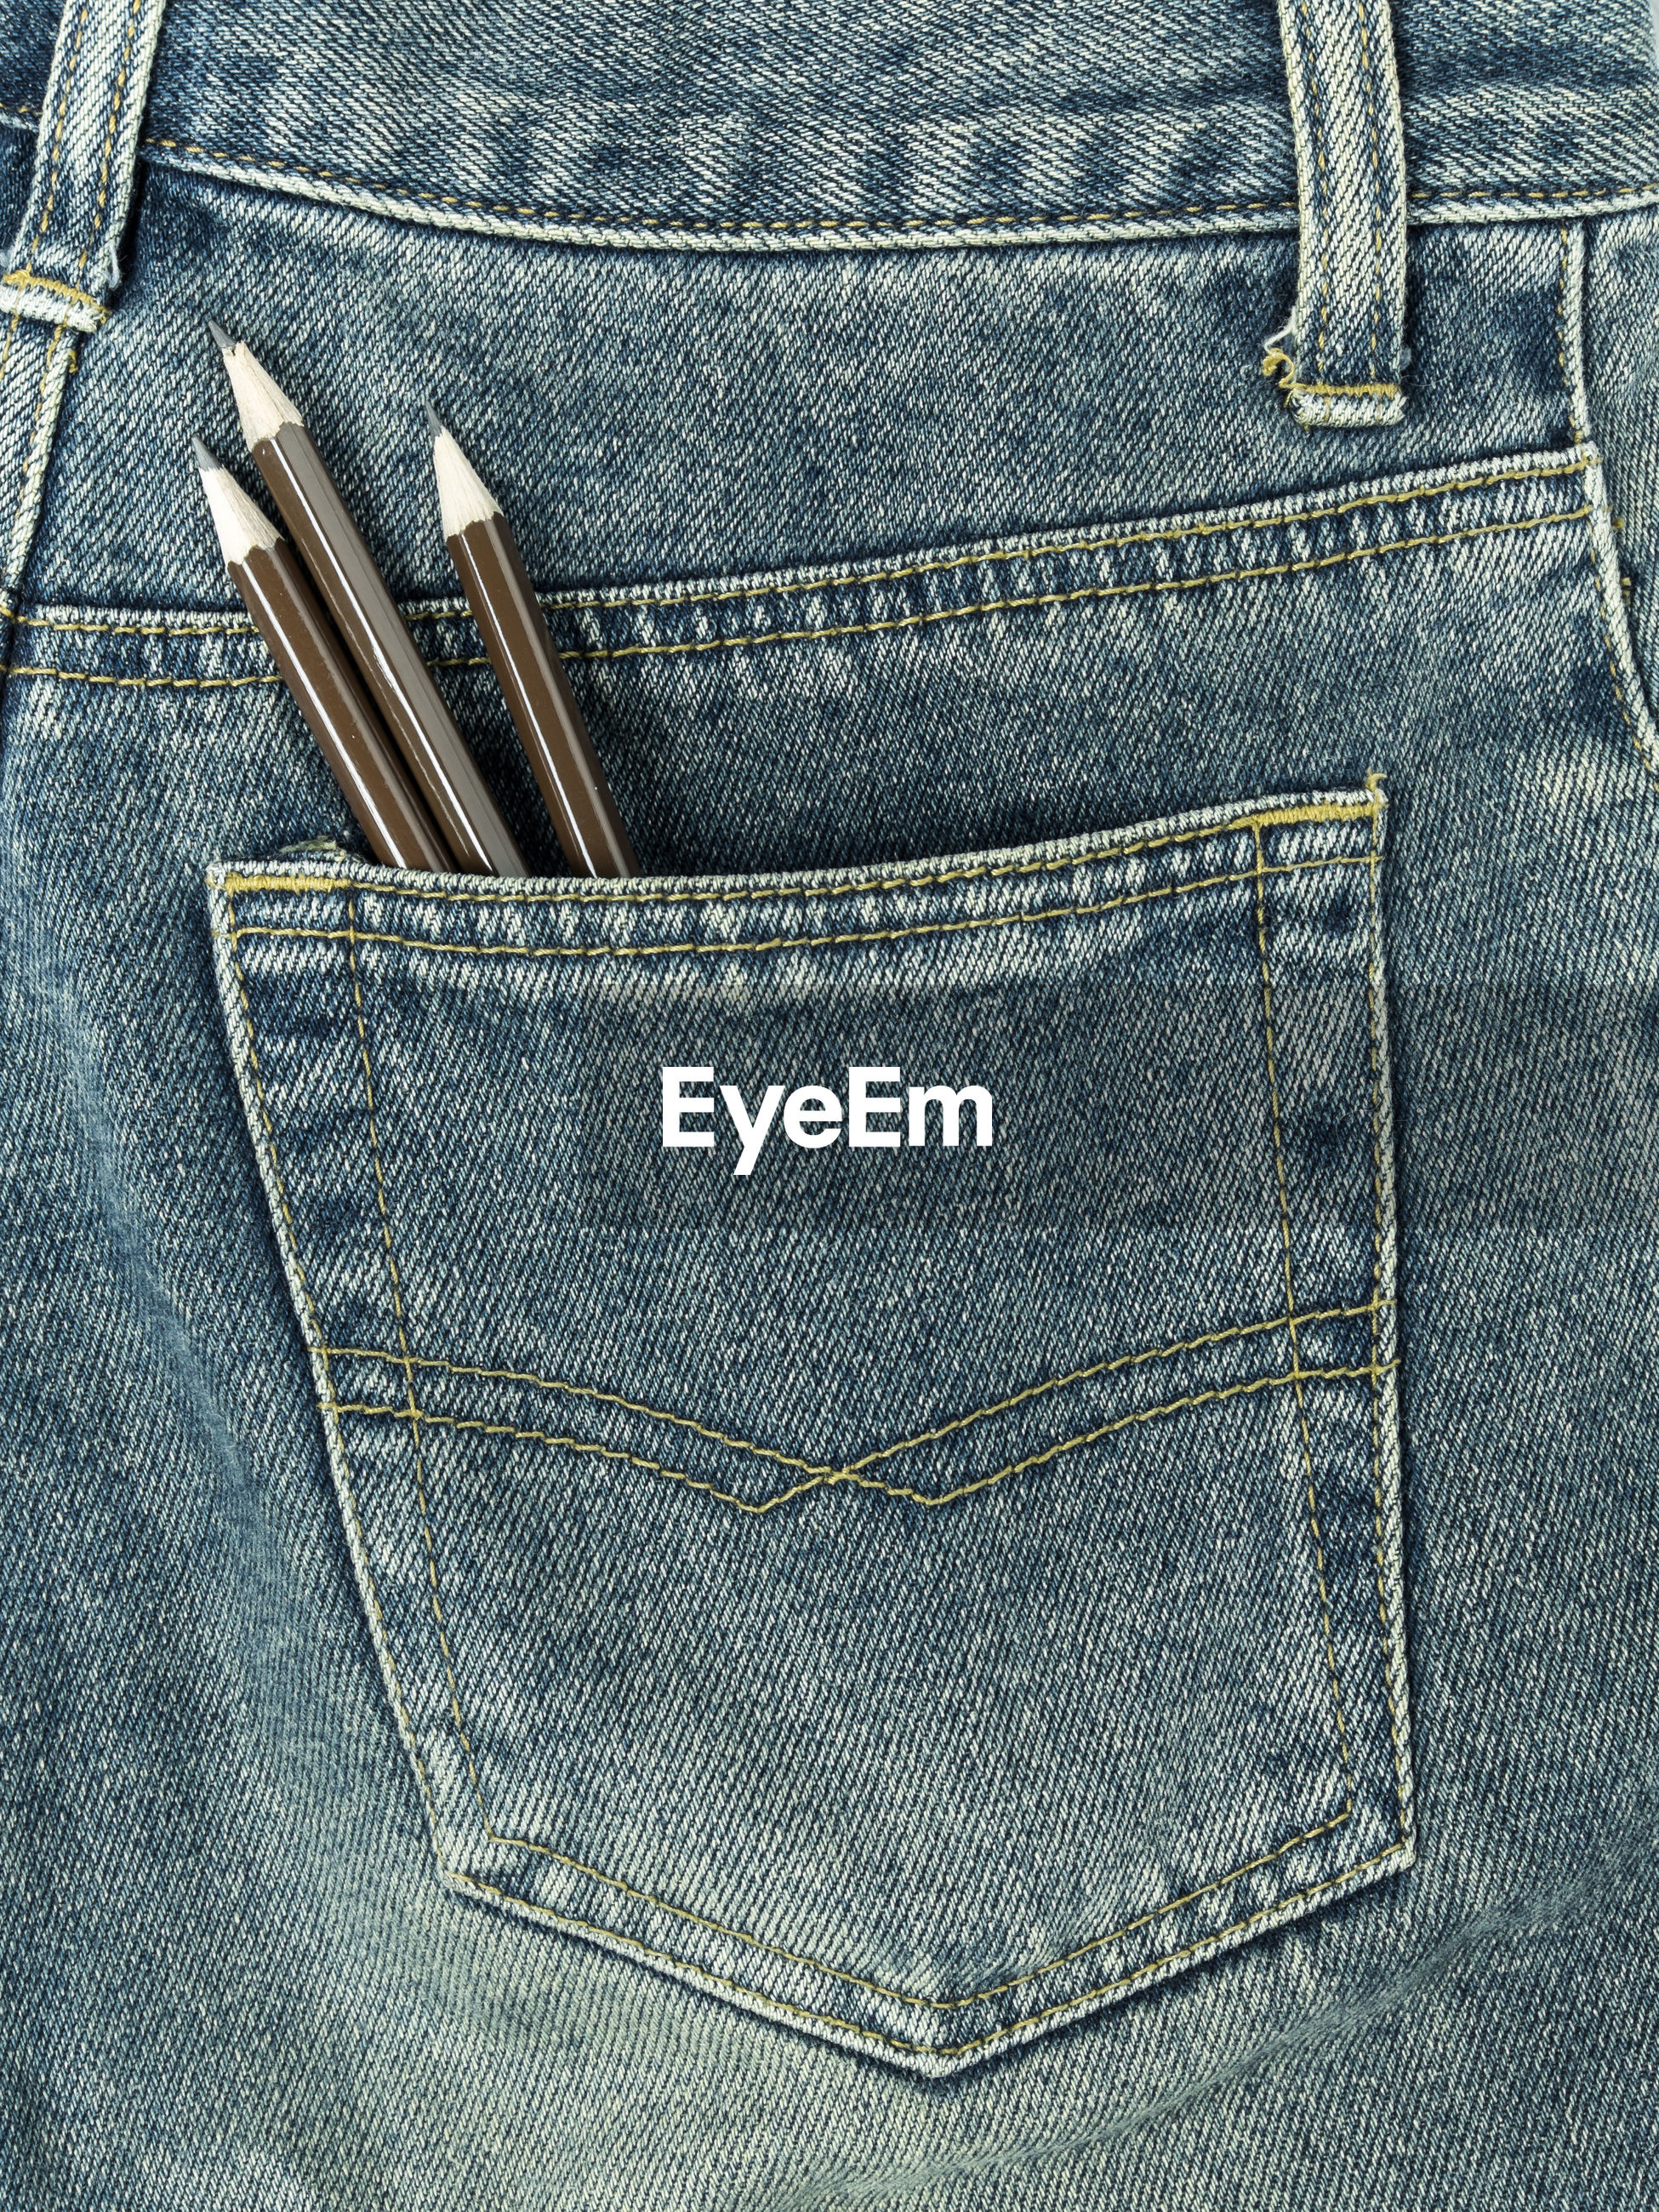 Close-up of pencils in pocket